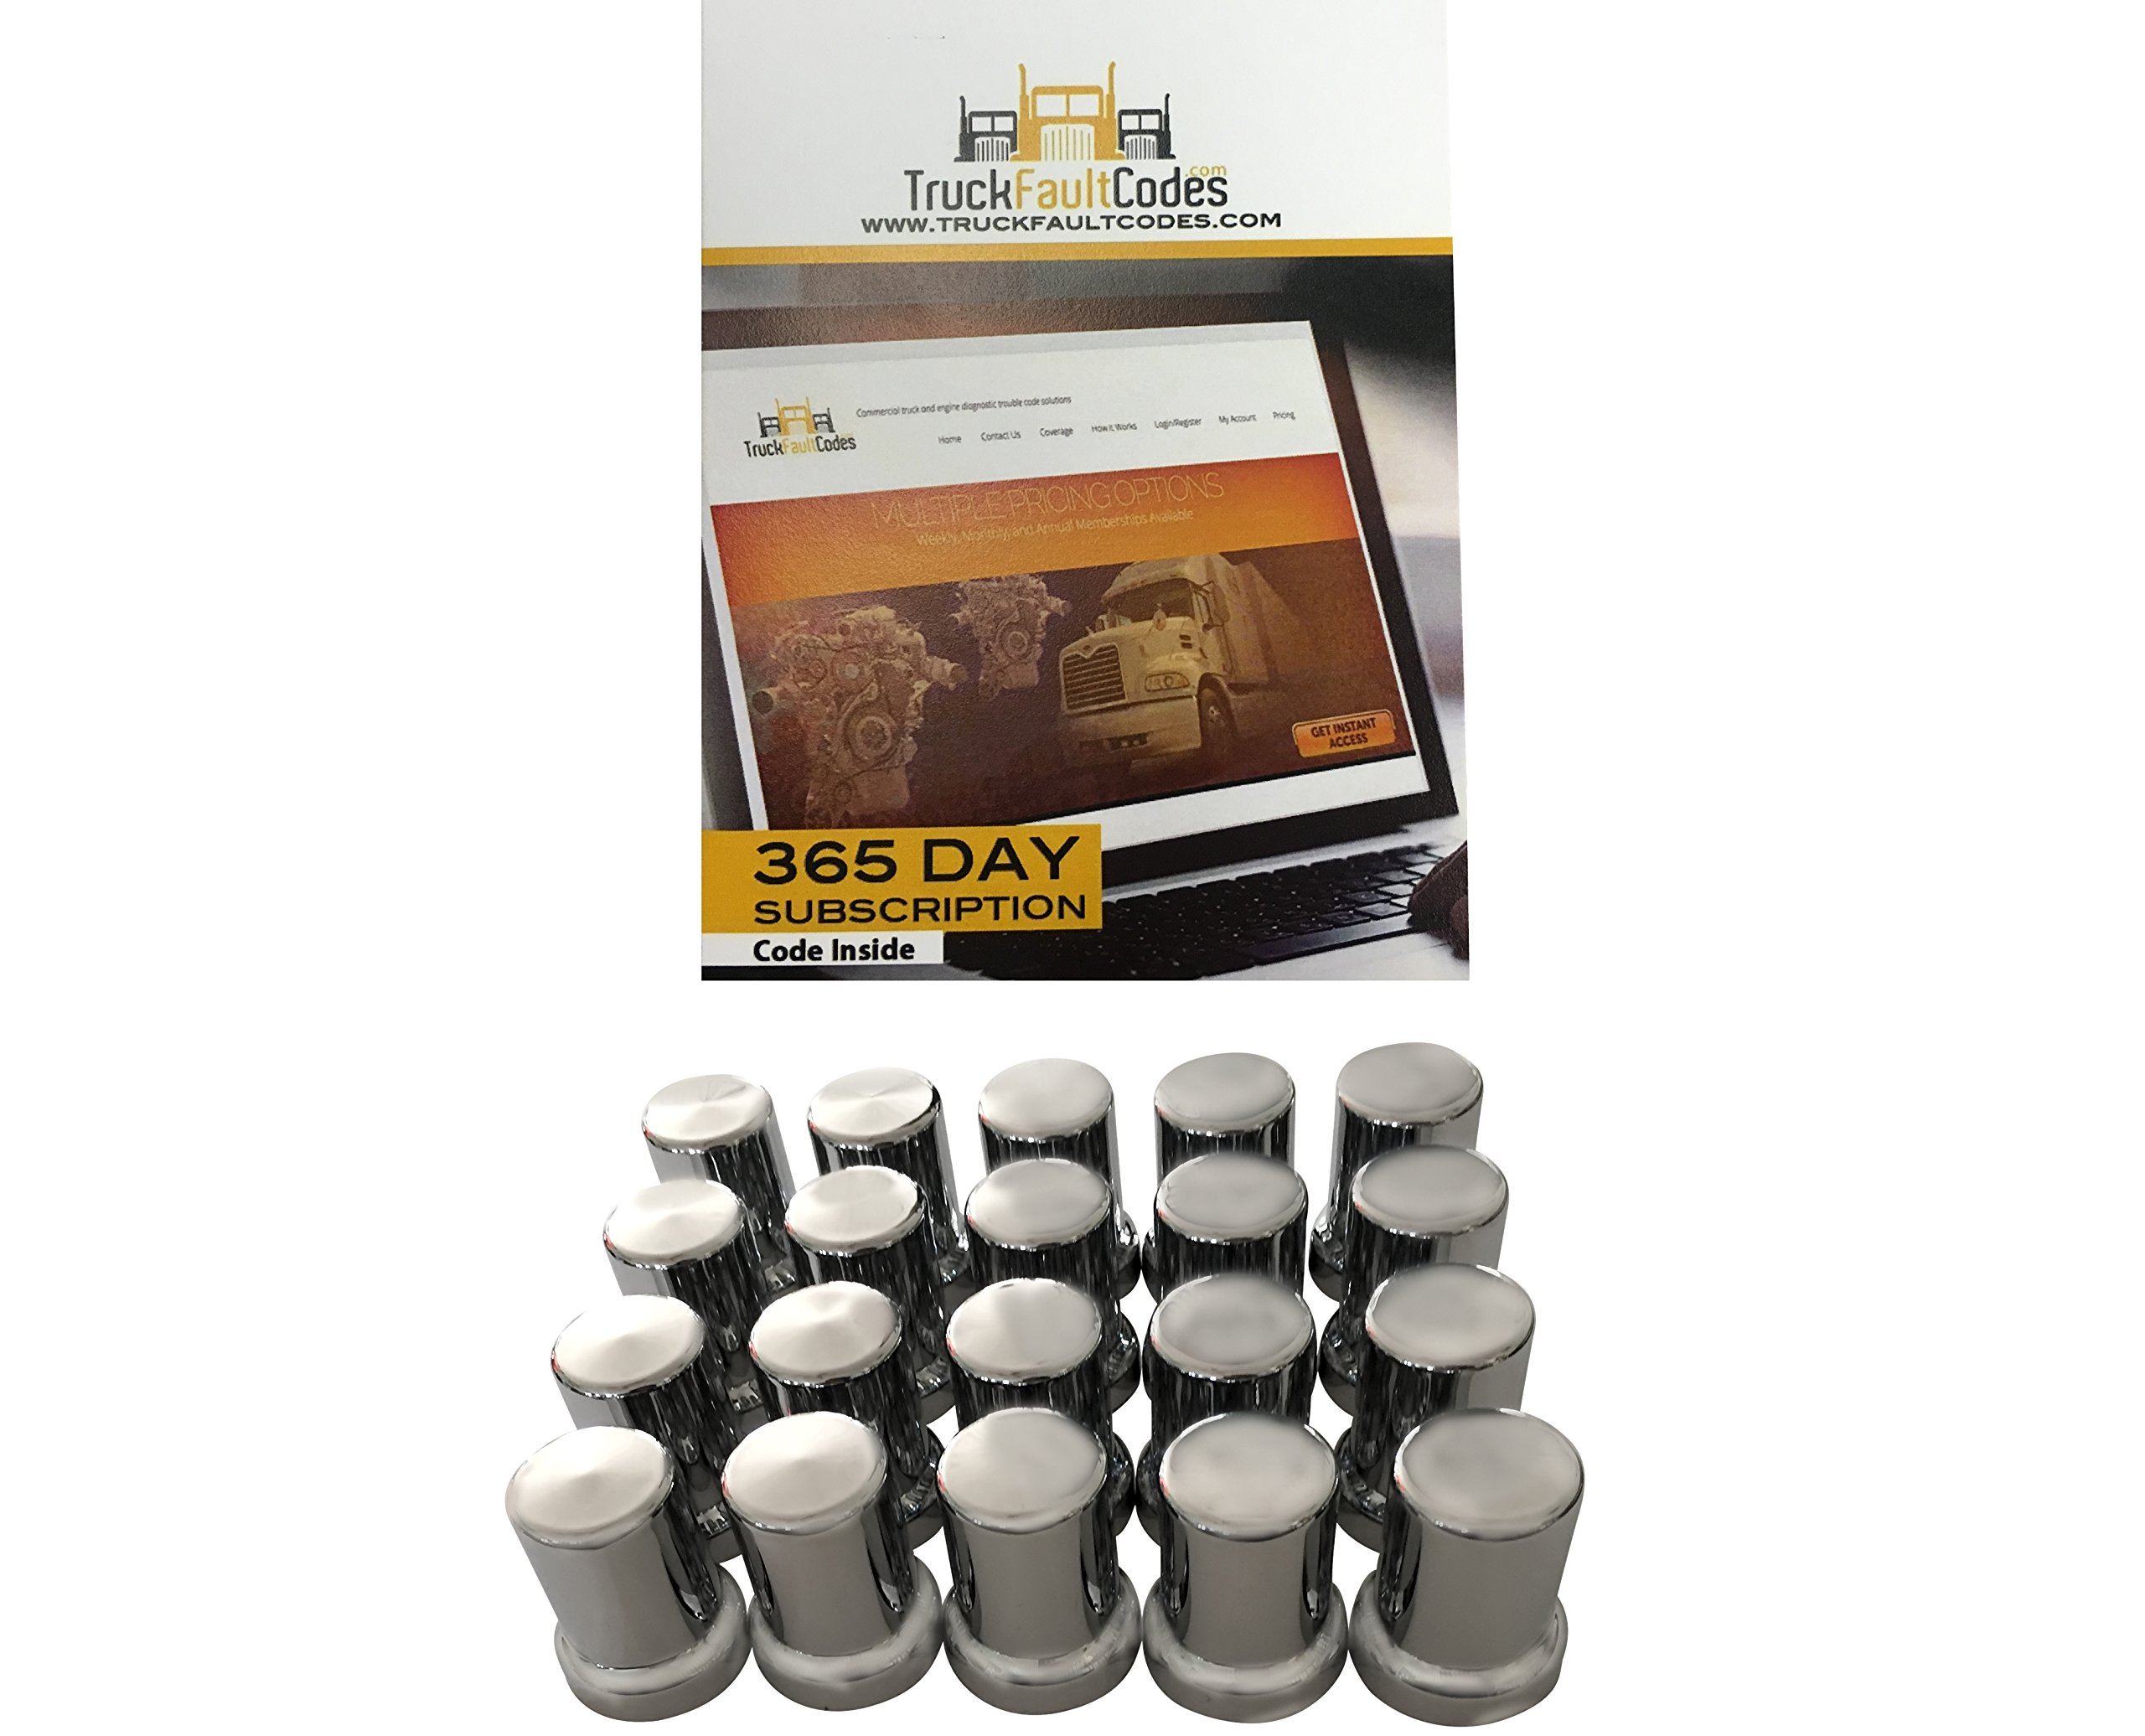 Diesel Laptops 20 Pack of 33mm x 3-3/8 Chrome Tower Tube Push on Nut Cover for Commercial Heavy Semi Trucks with 12-month Membership to TruckFaultCodes